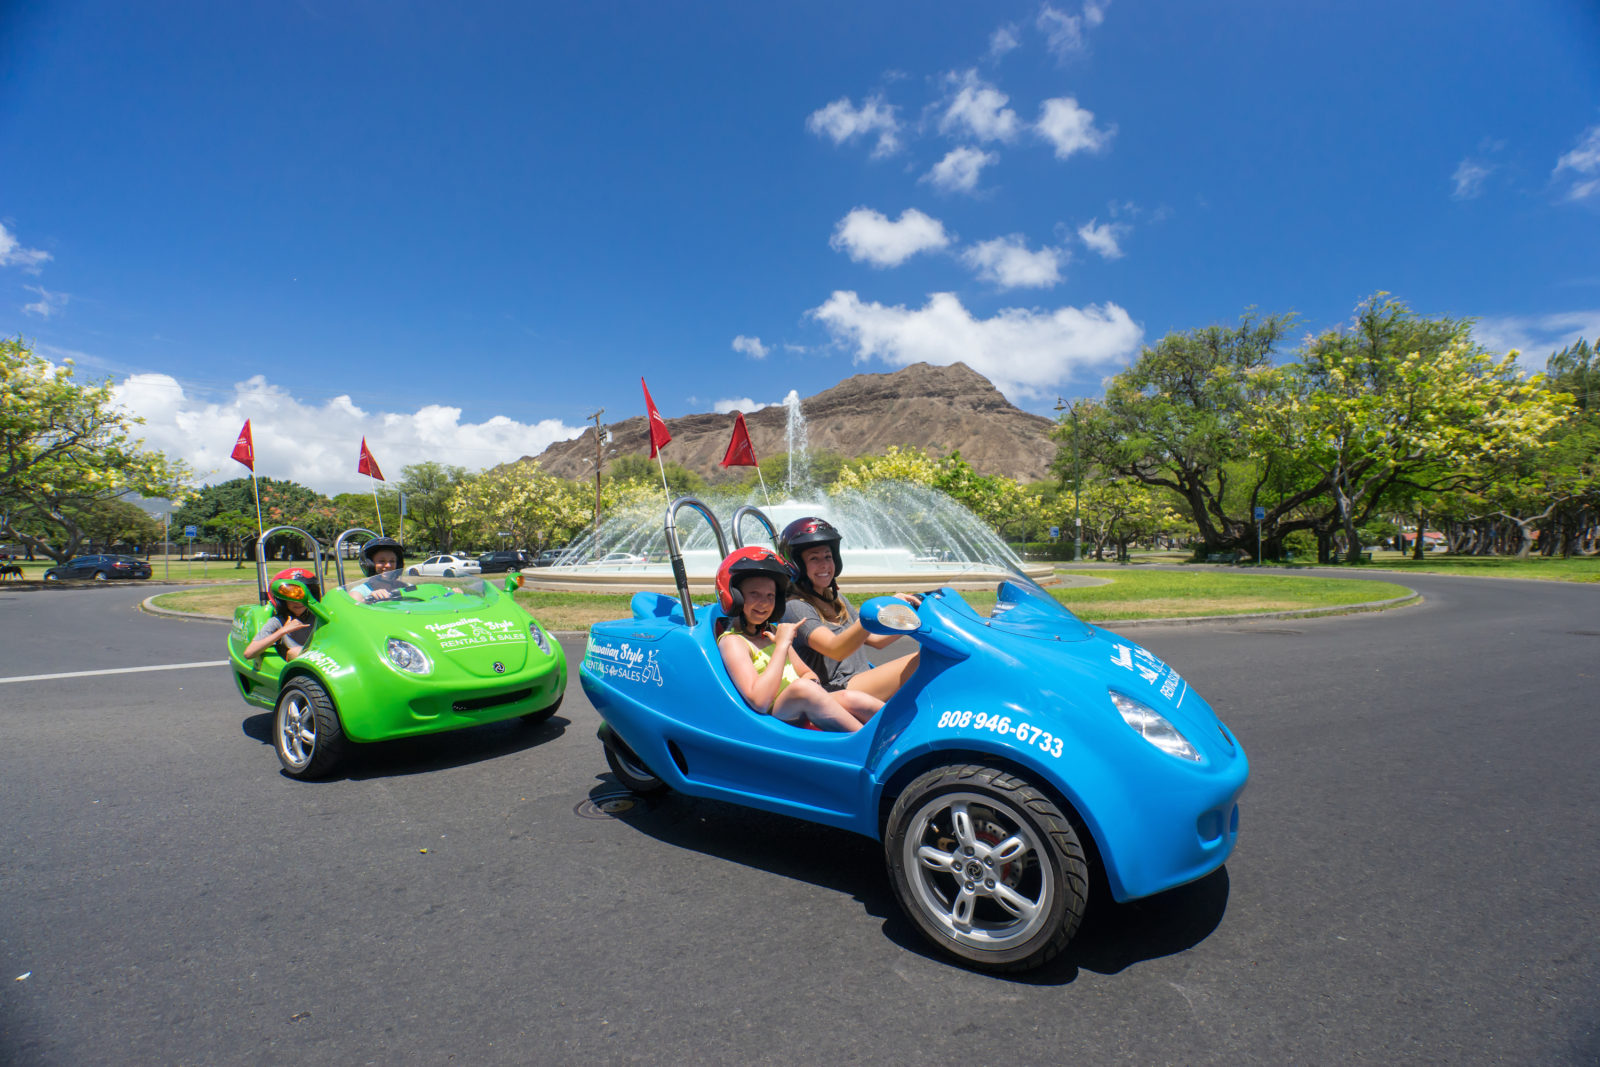 7d98c58a75 Two Person Moped Rentals in Waikiki Hawaii Scoot Coupe